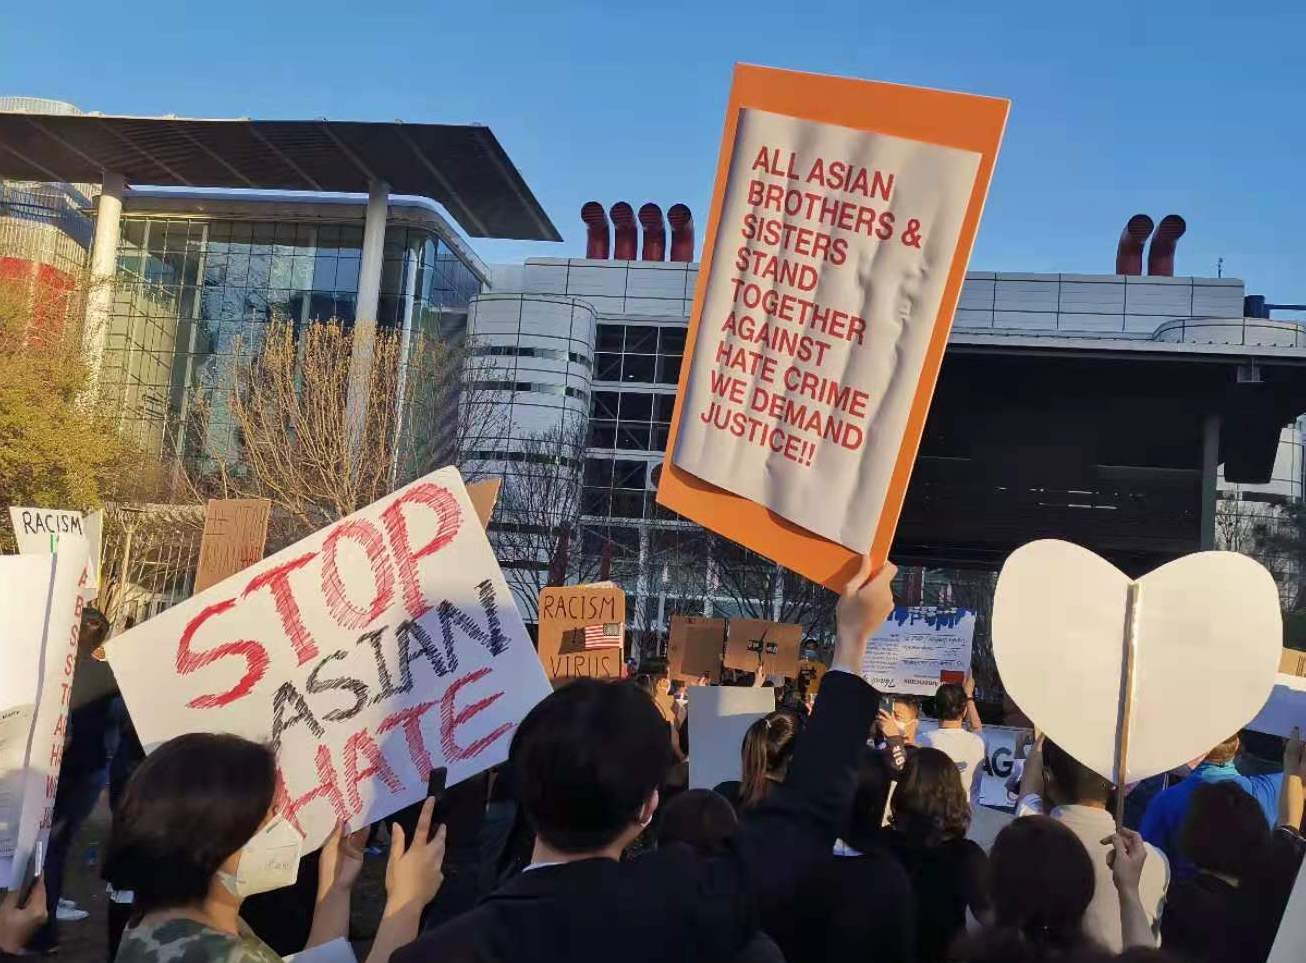 Protest in downtown Houston after Georgia shooting in March 2021